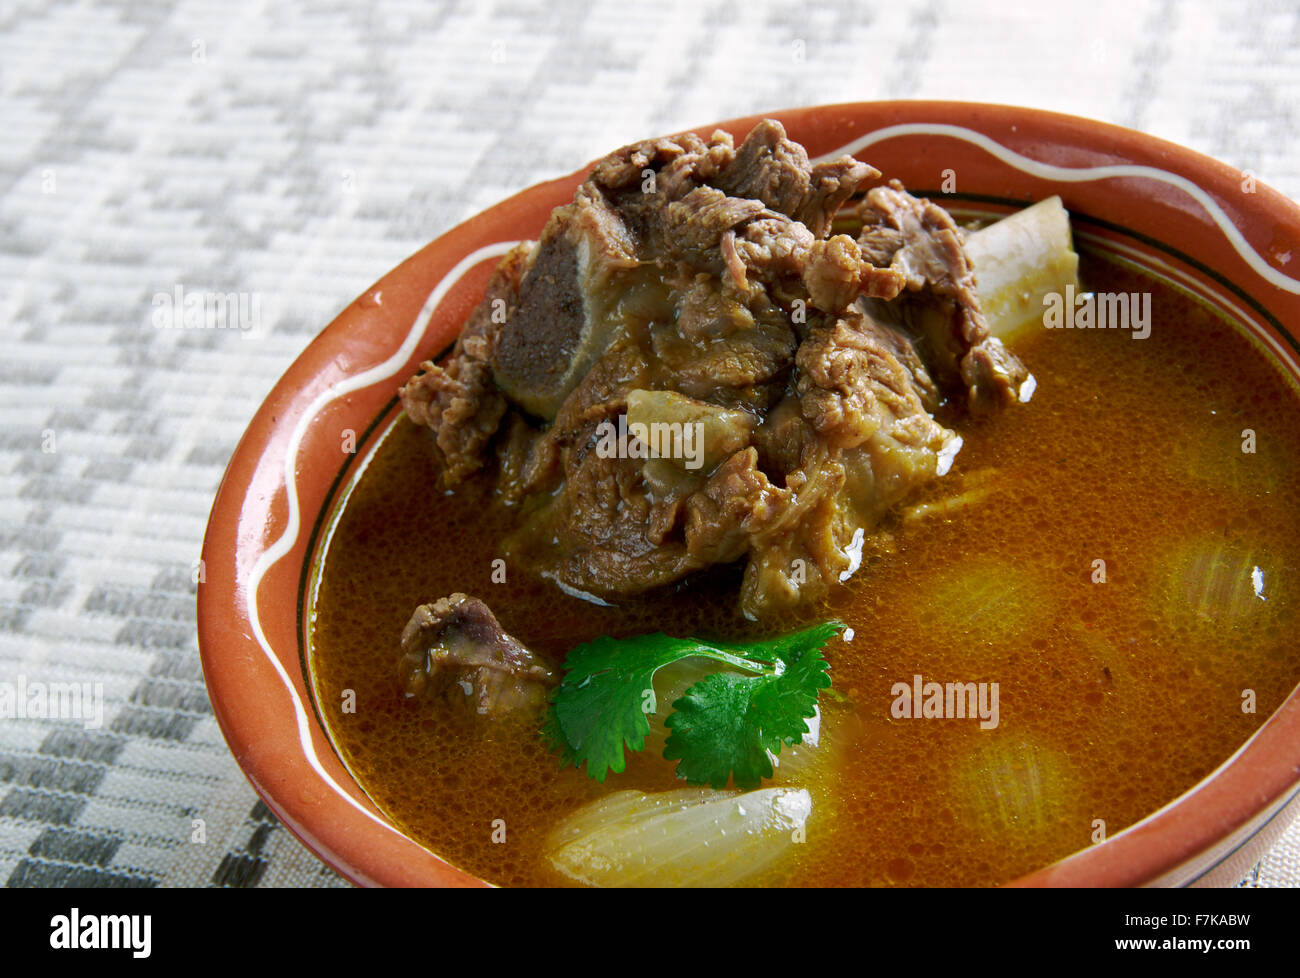 Mutton Paya - traditional South Asian food.cooked with various spices. - Stock Image